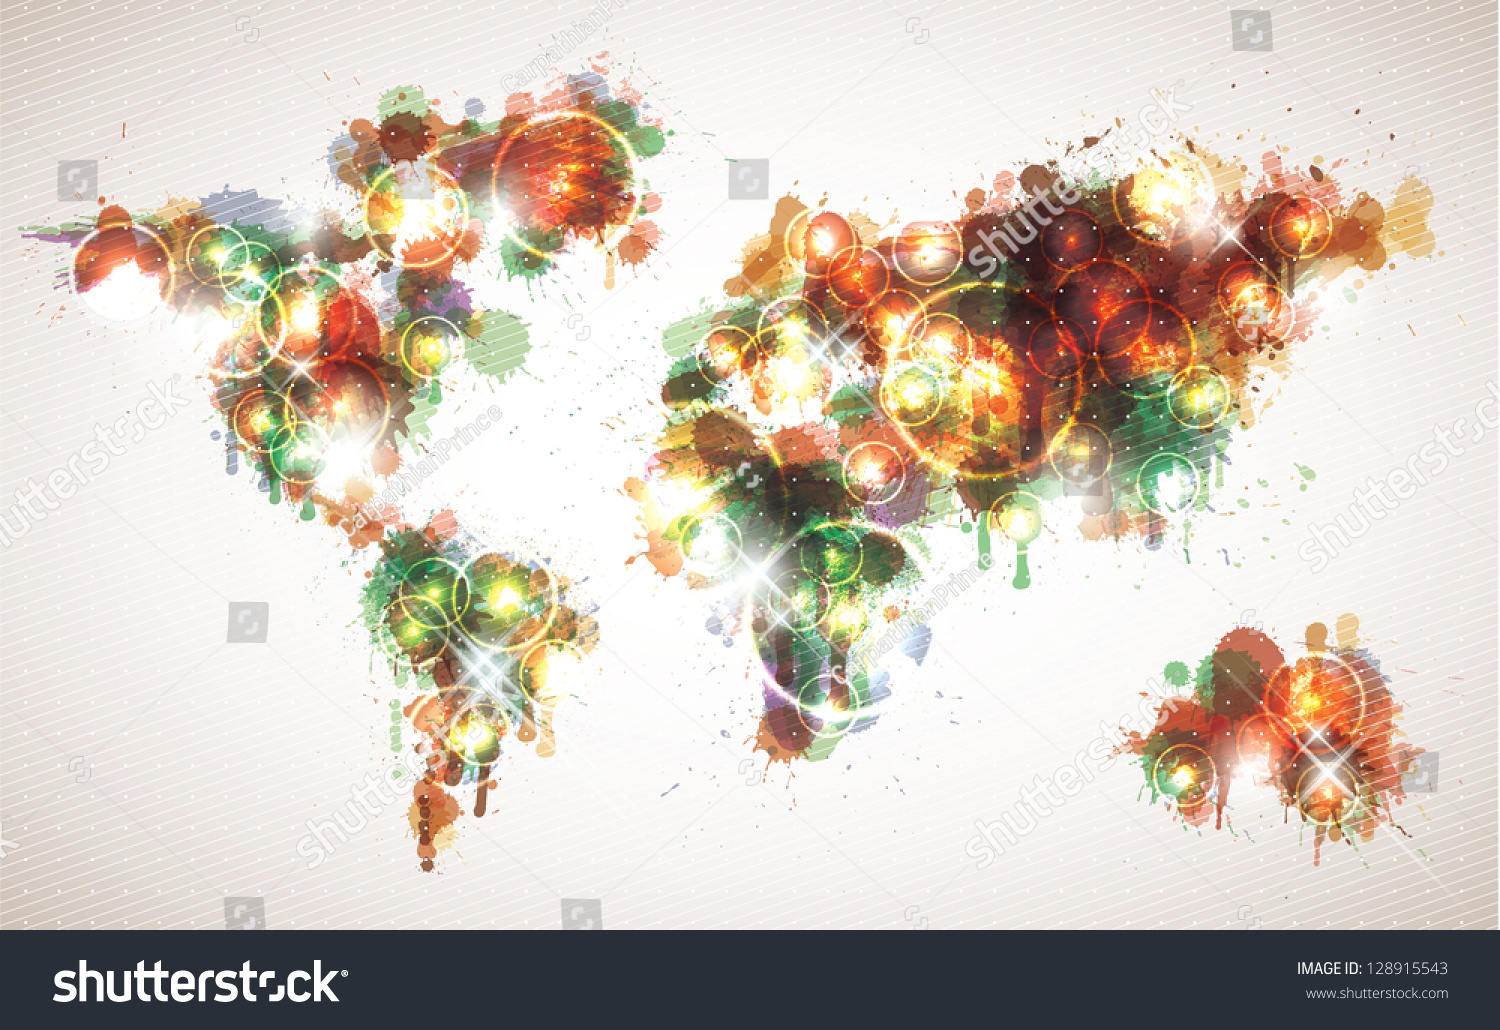 painterly world map done in a warm contemporary color scheme - Contemporary Color Scheme